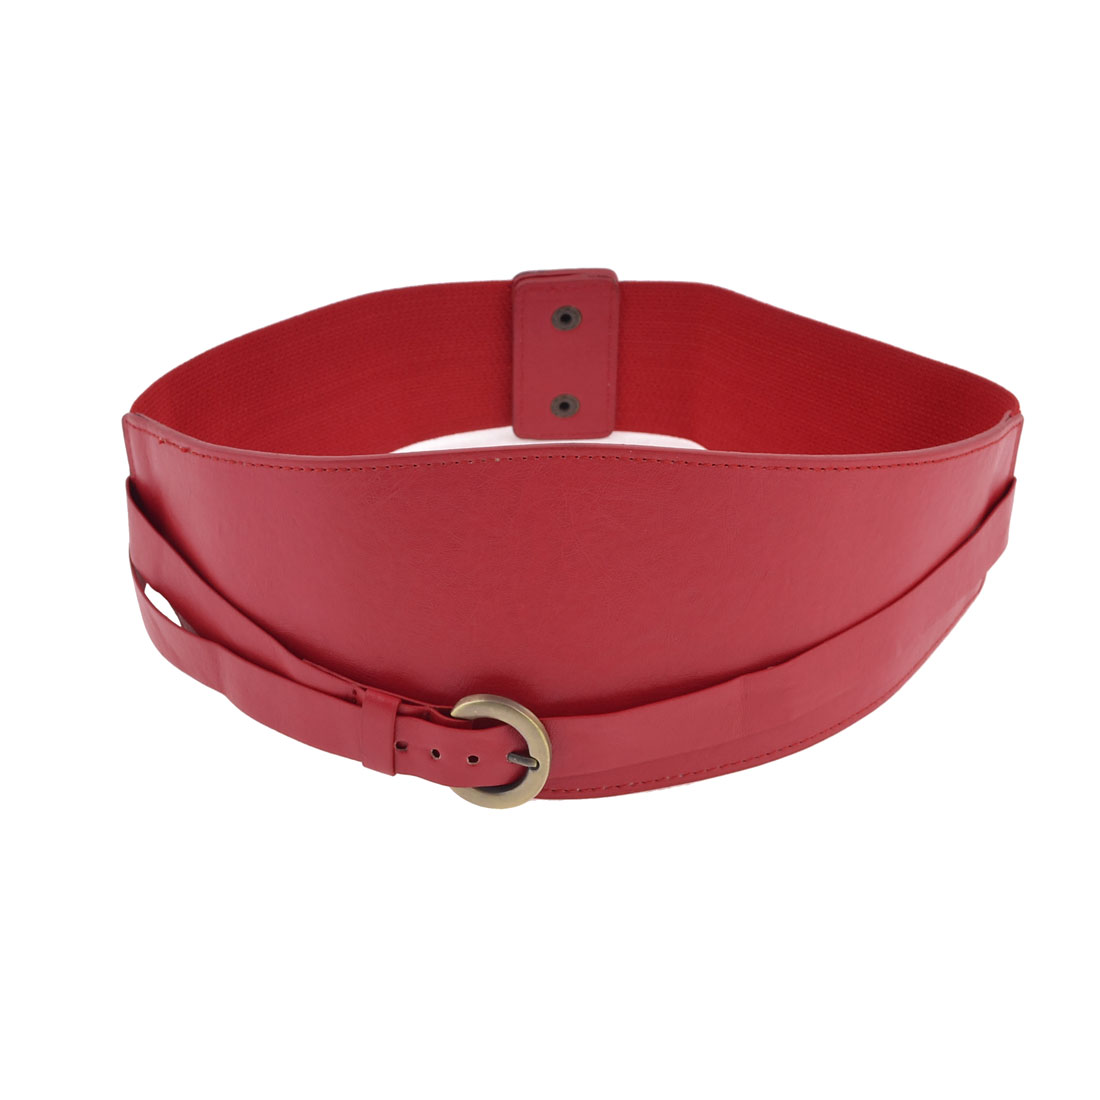 Woman Interlocking Buckle Red Stretch Litchi Print Waist Cinch Belt